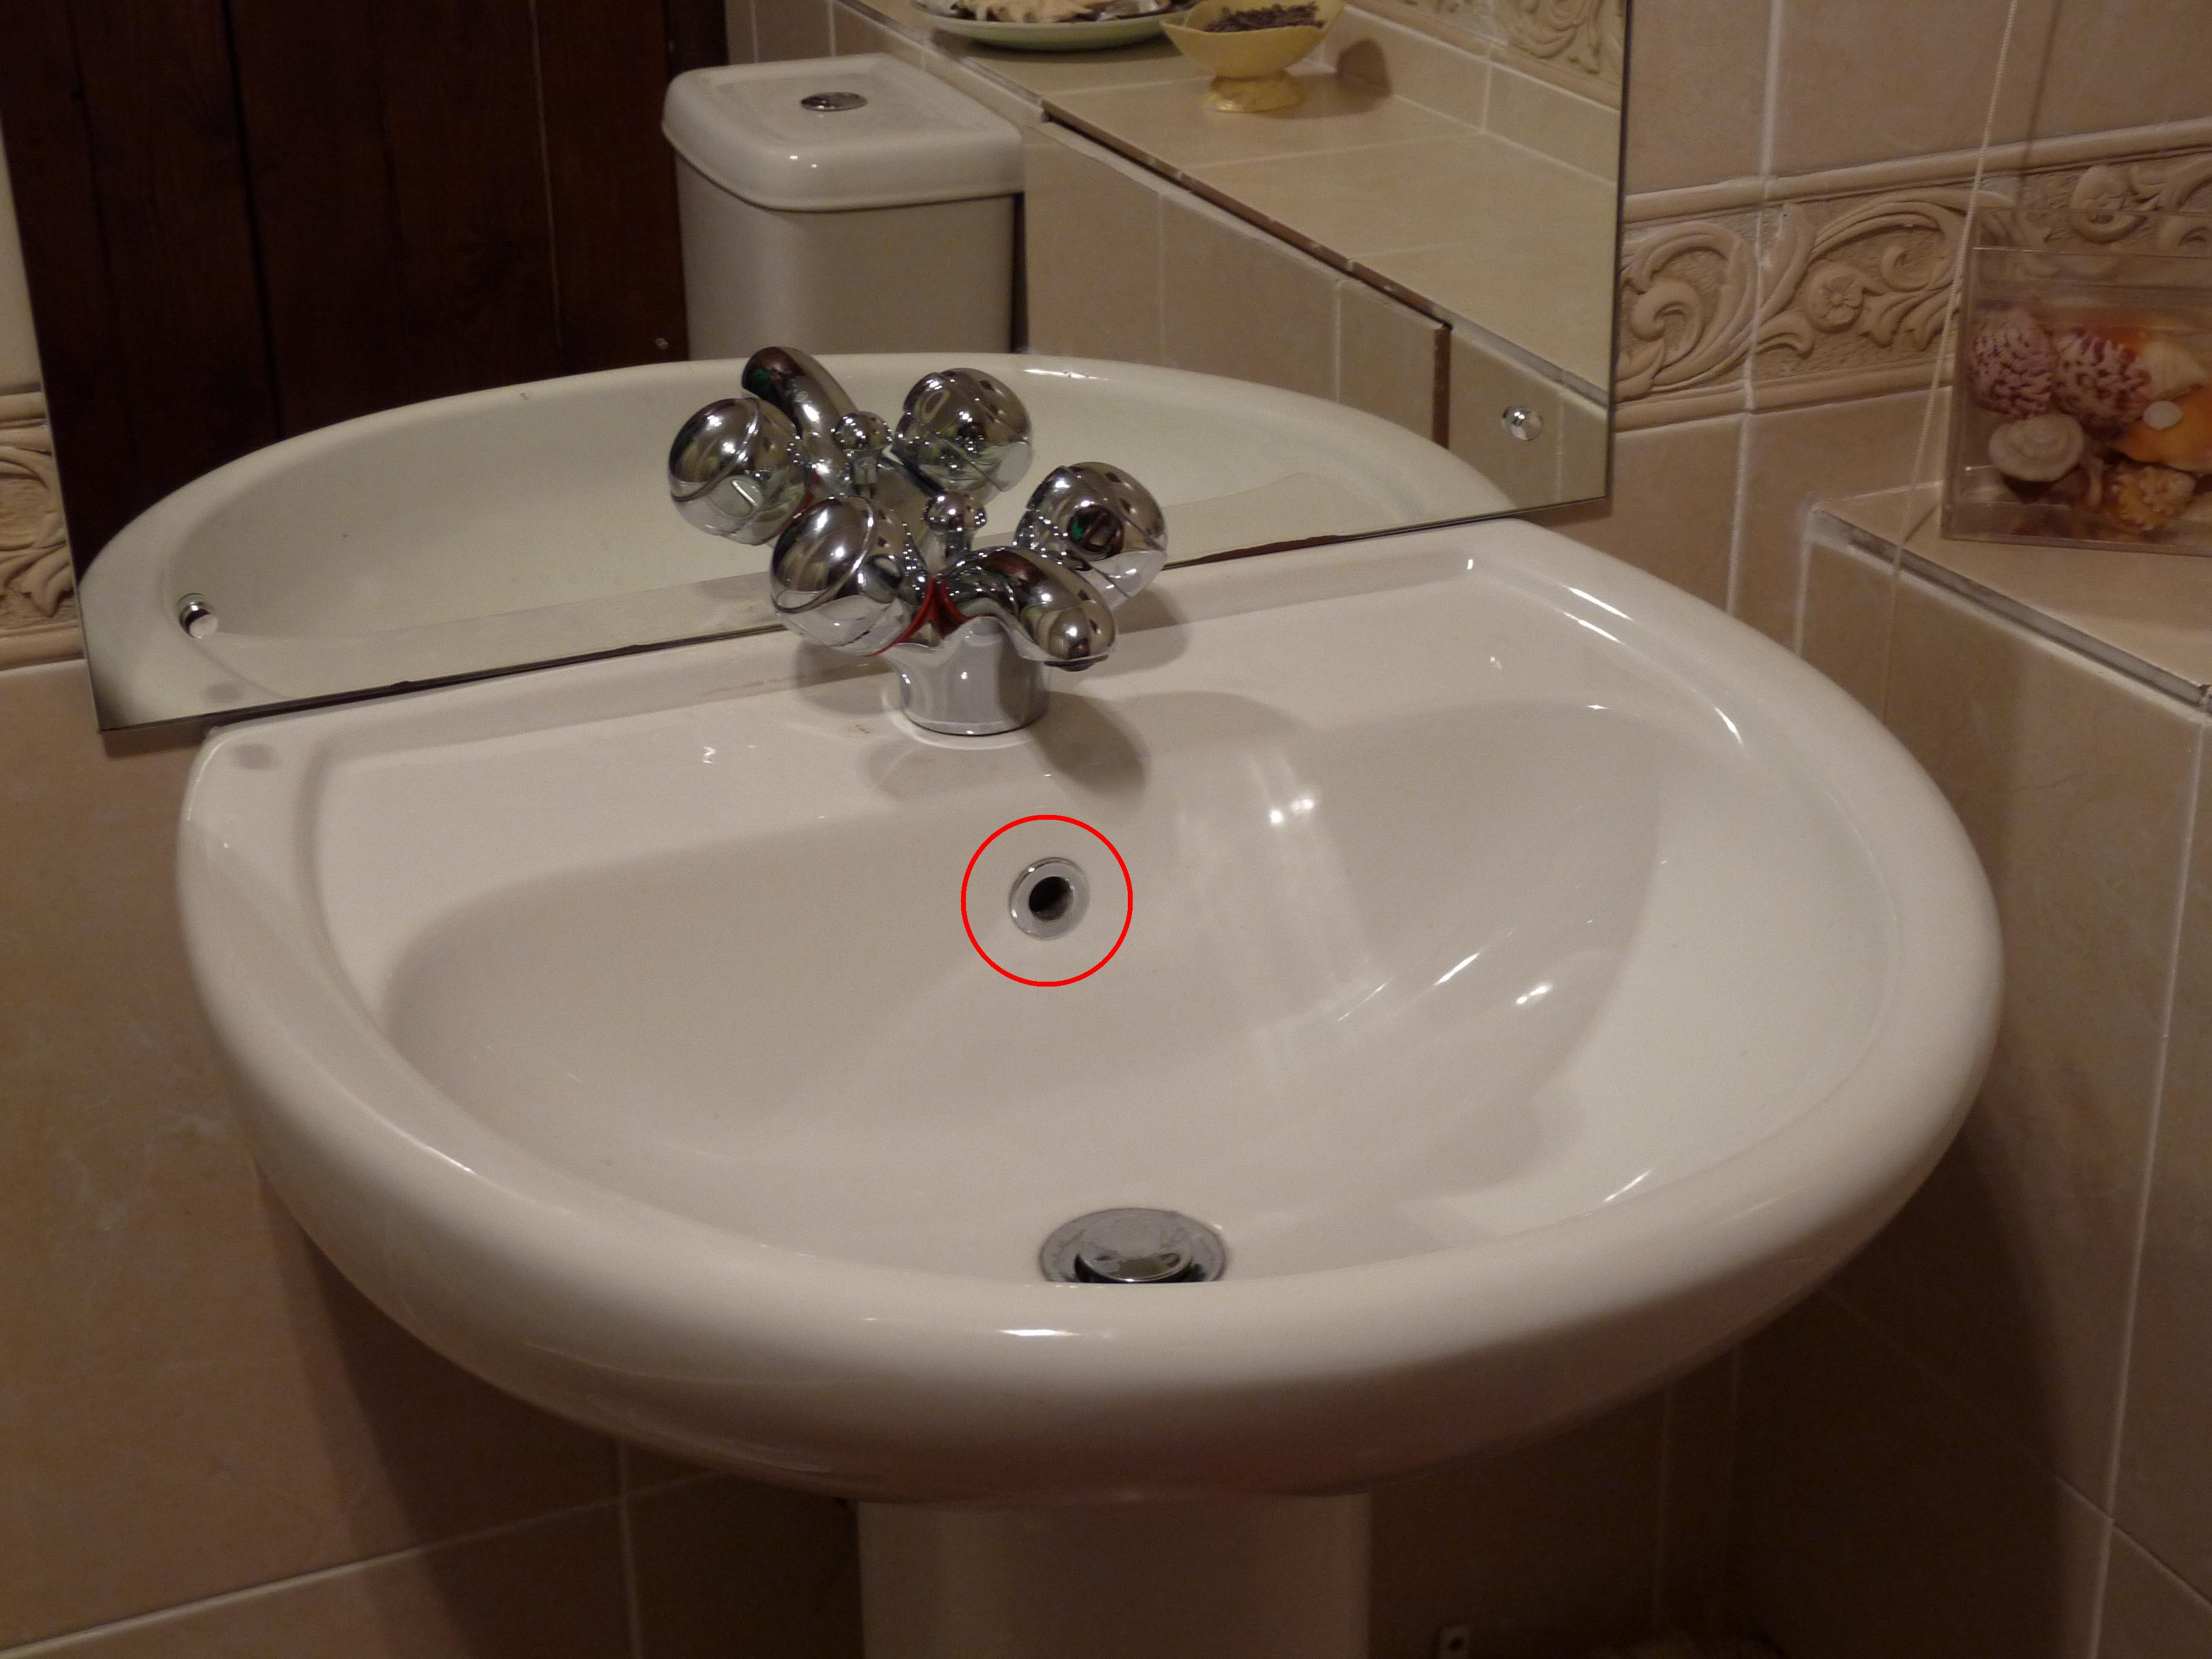 File:Bathroom Sink With Overflow Hole Circled